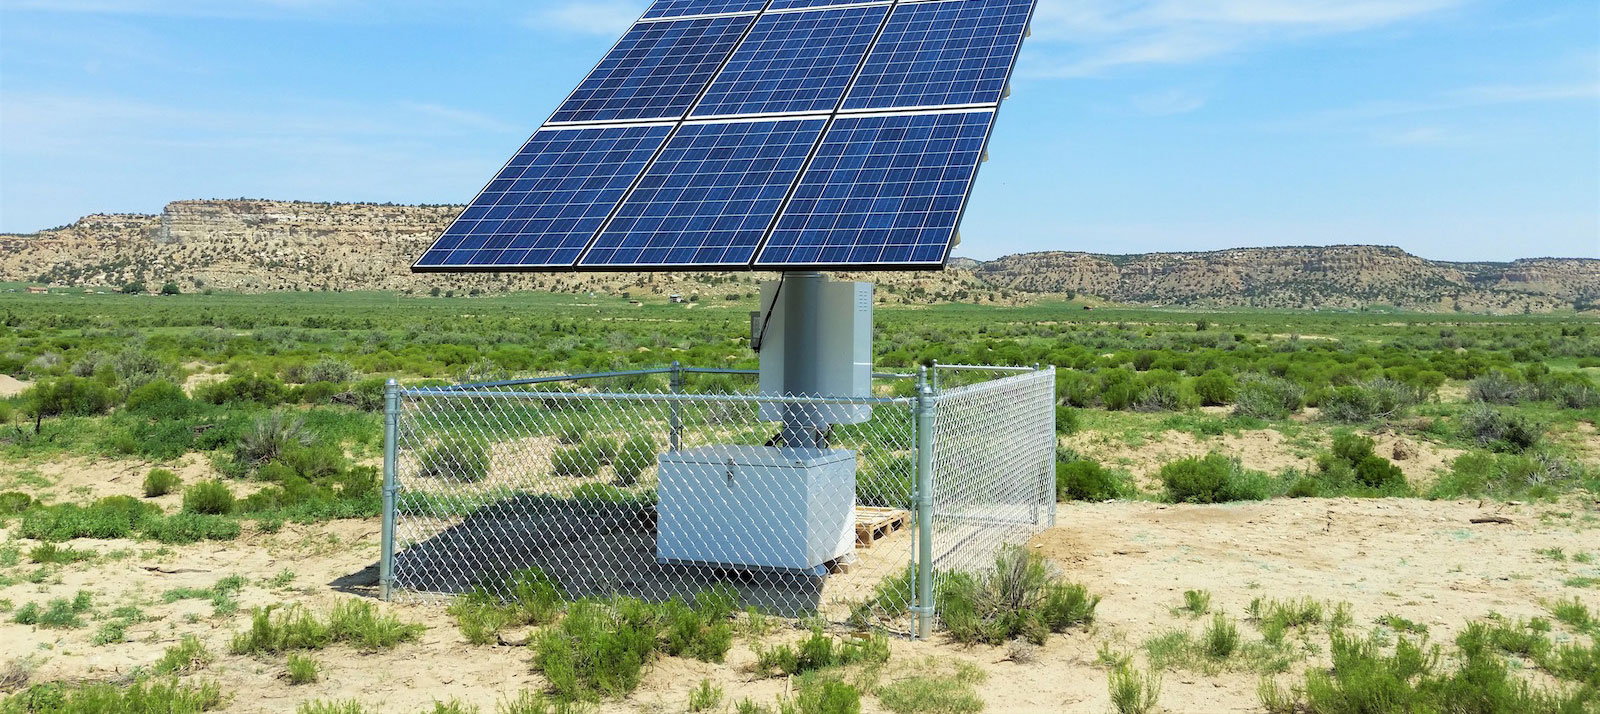 Off Grid Solar In Northern Arizona Flagstaff Prometheus How To Hook Up A Panel System Living Of The Electronic